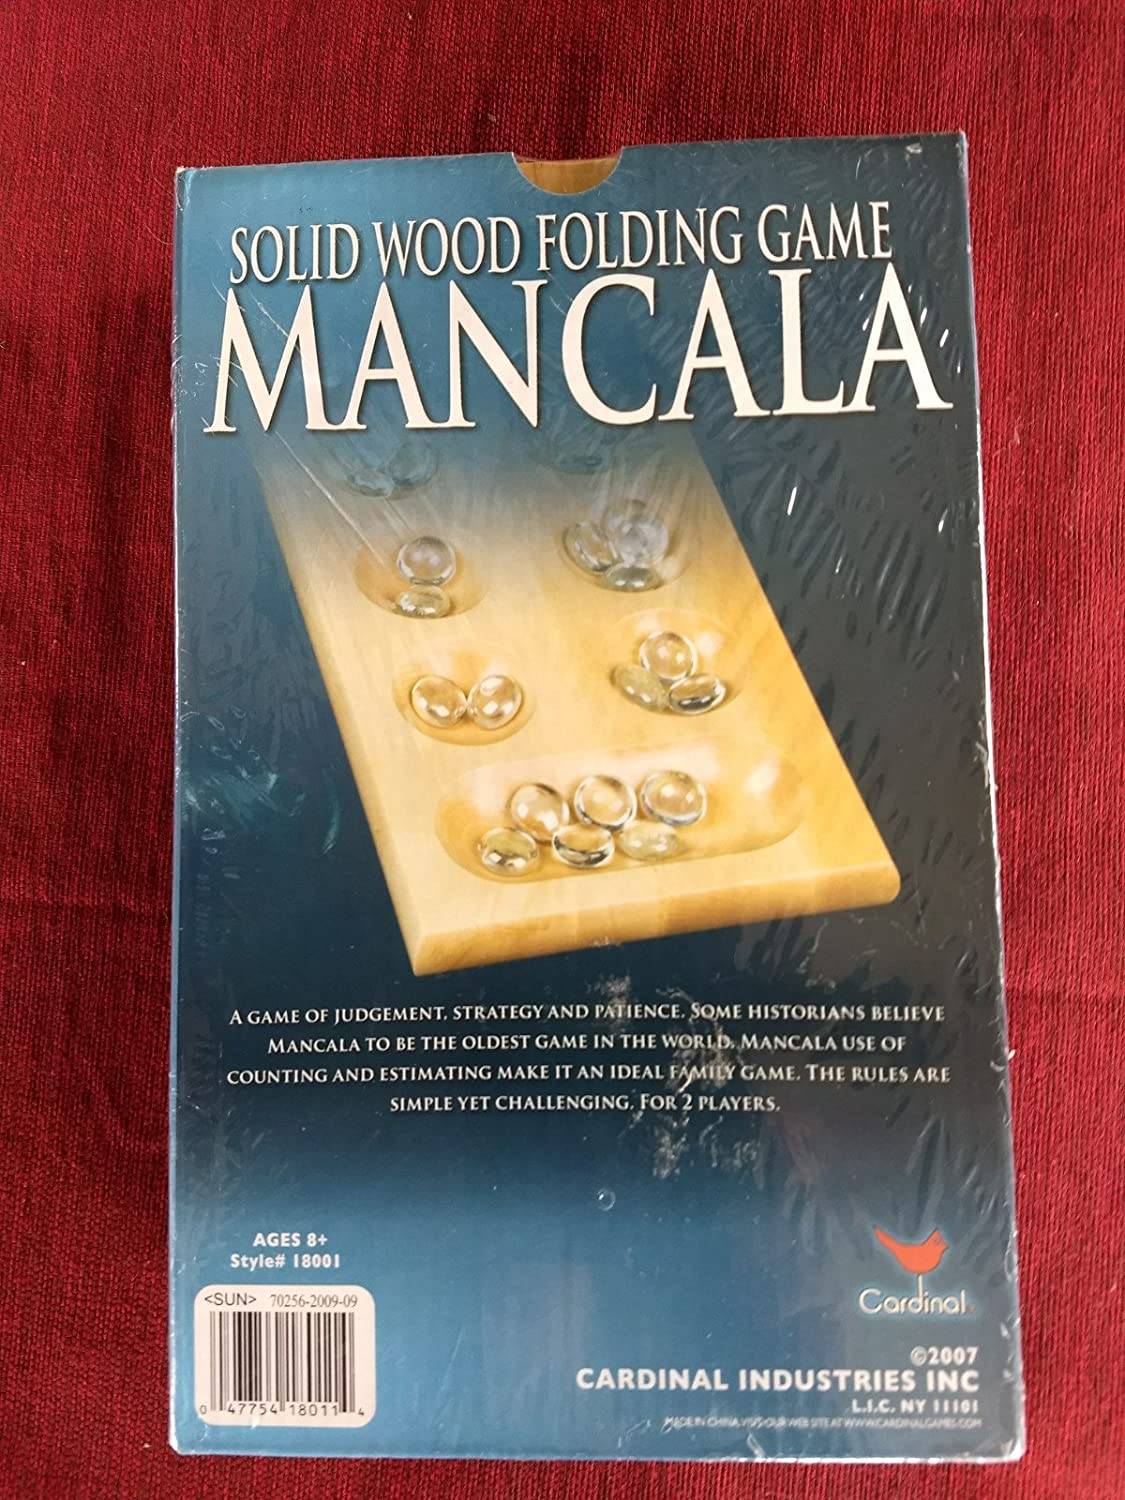 Mancala Solid Wood Folding Game By Cardinal Family Game Oldest Game In World 6109631